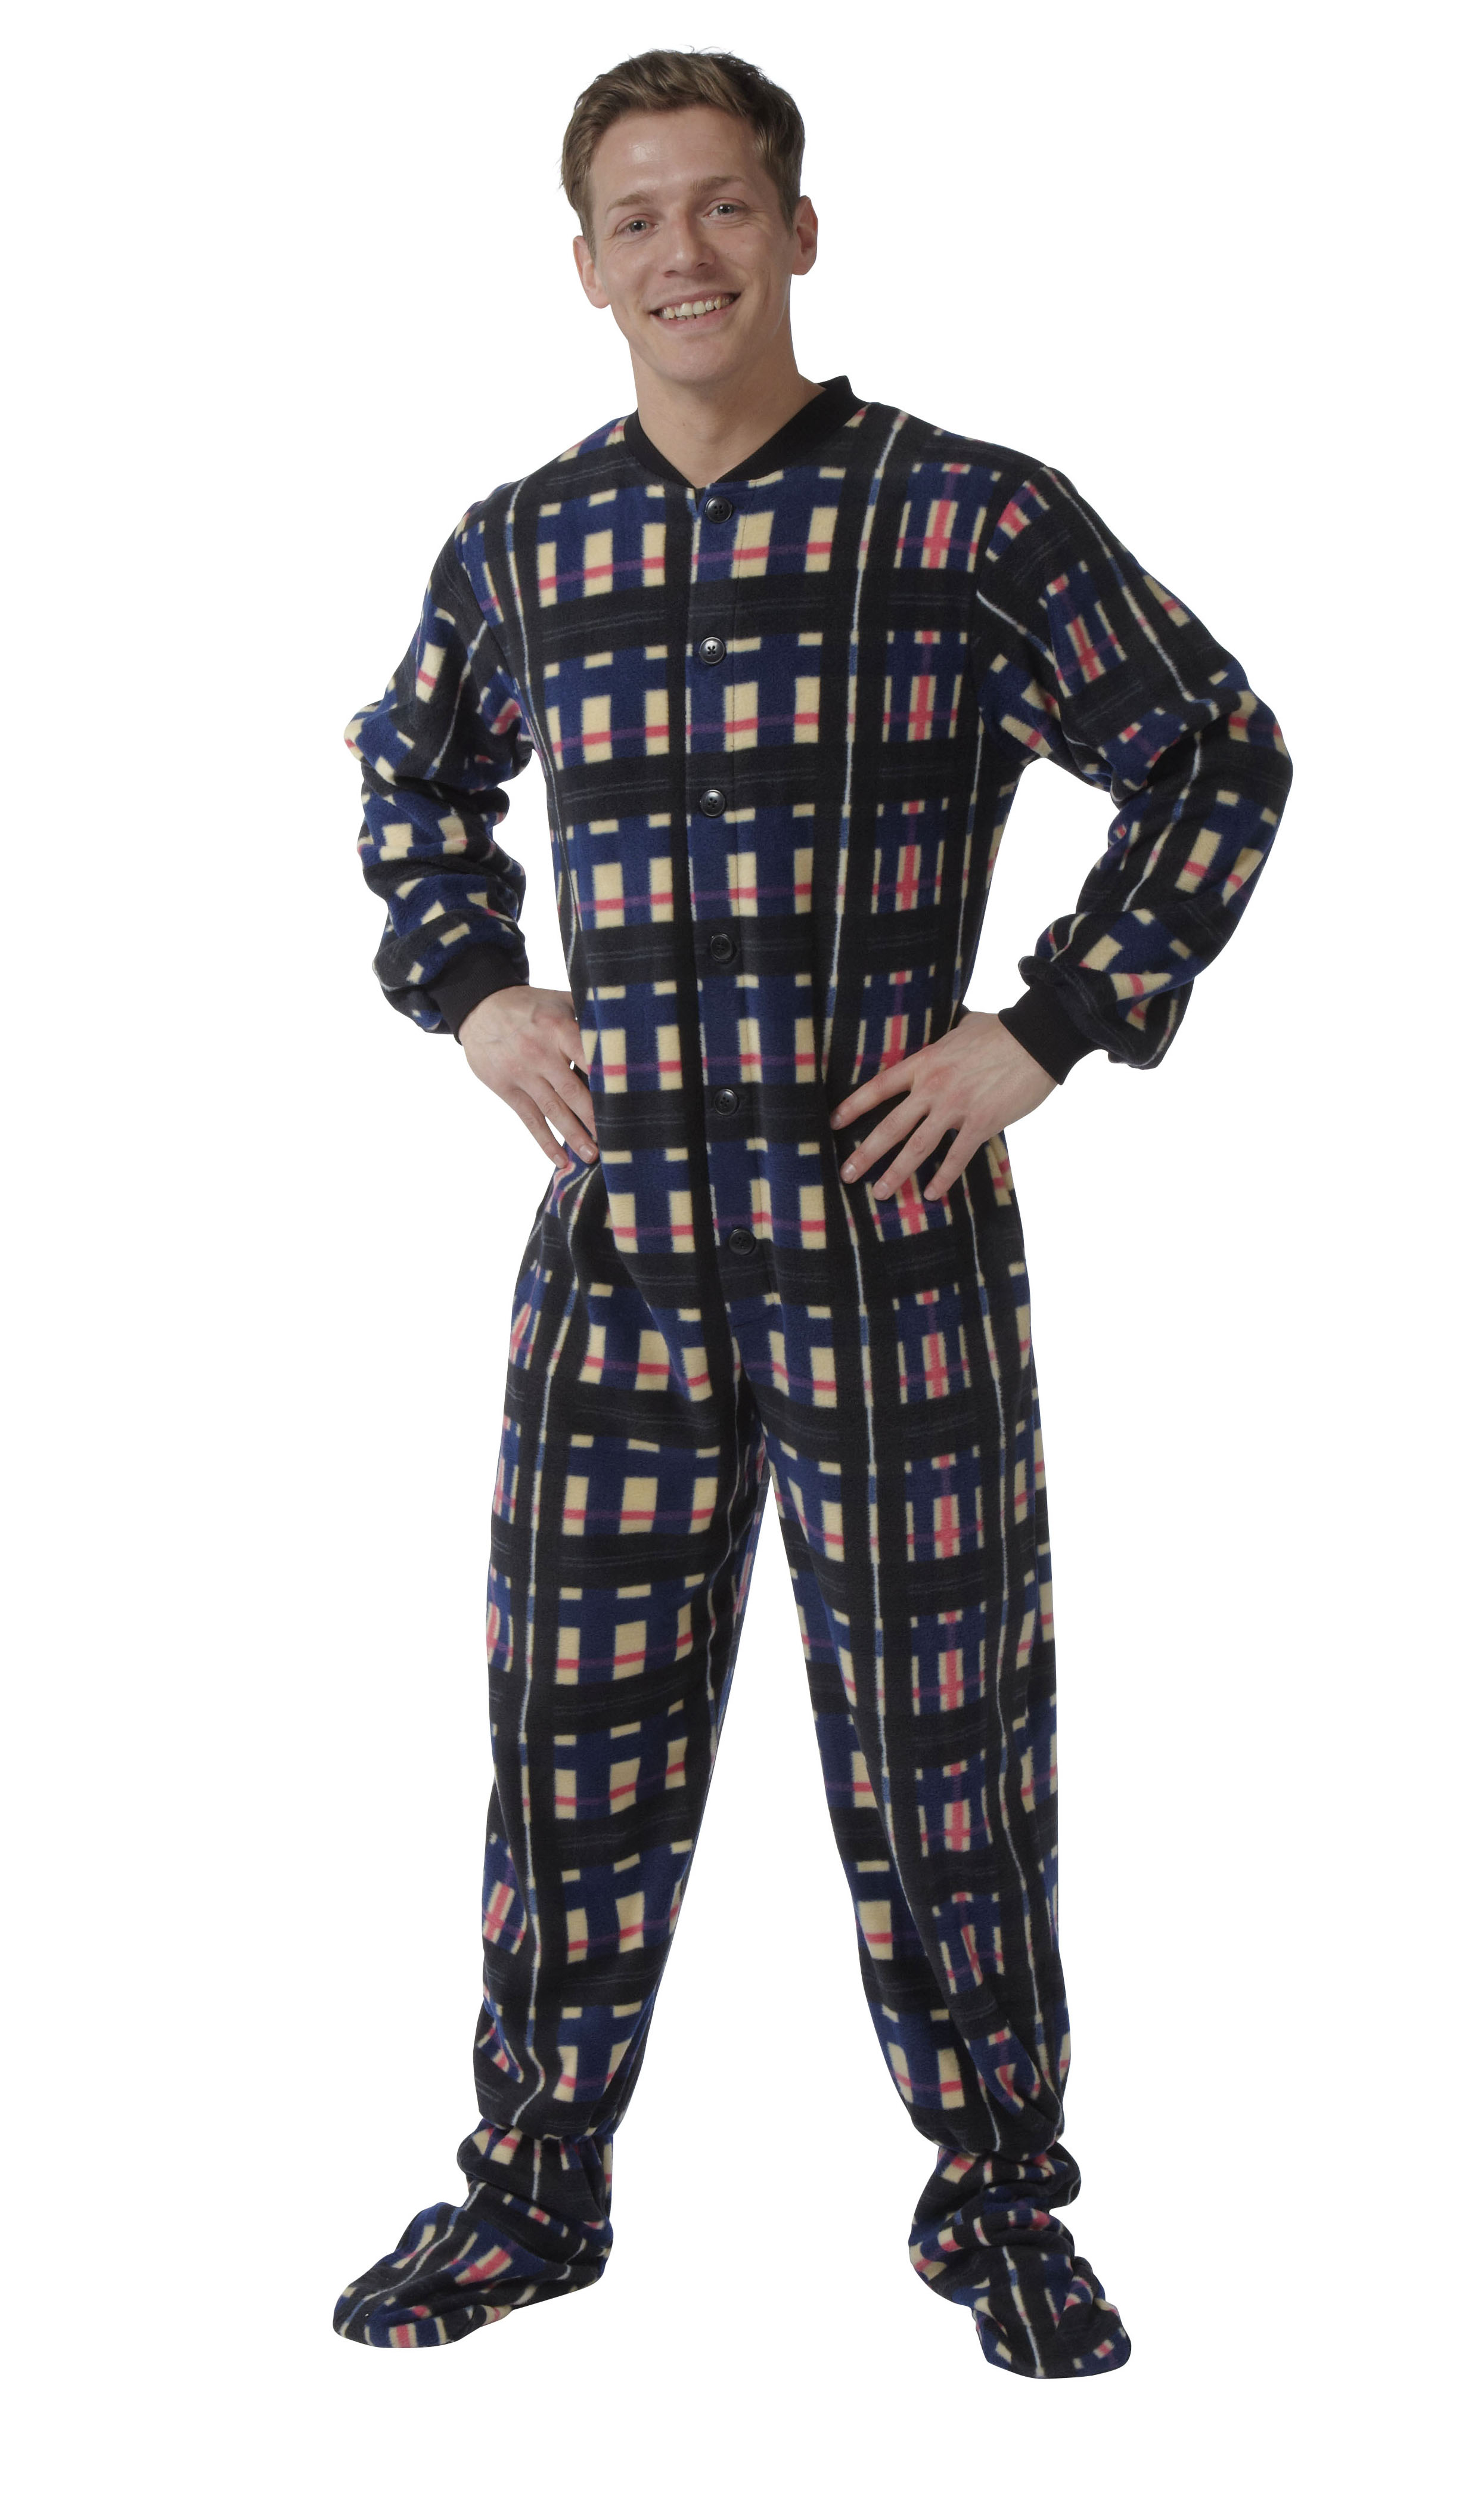 snuggaroo herren schlafanzug einteiler onesie fleece ebay. Black Bedroom Furniture Sets. Home Design Ideas